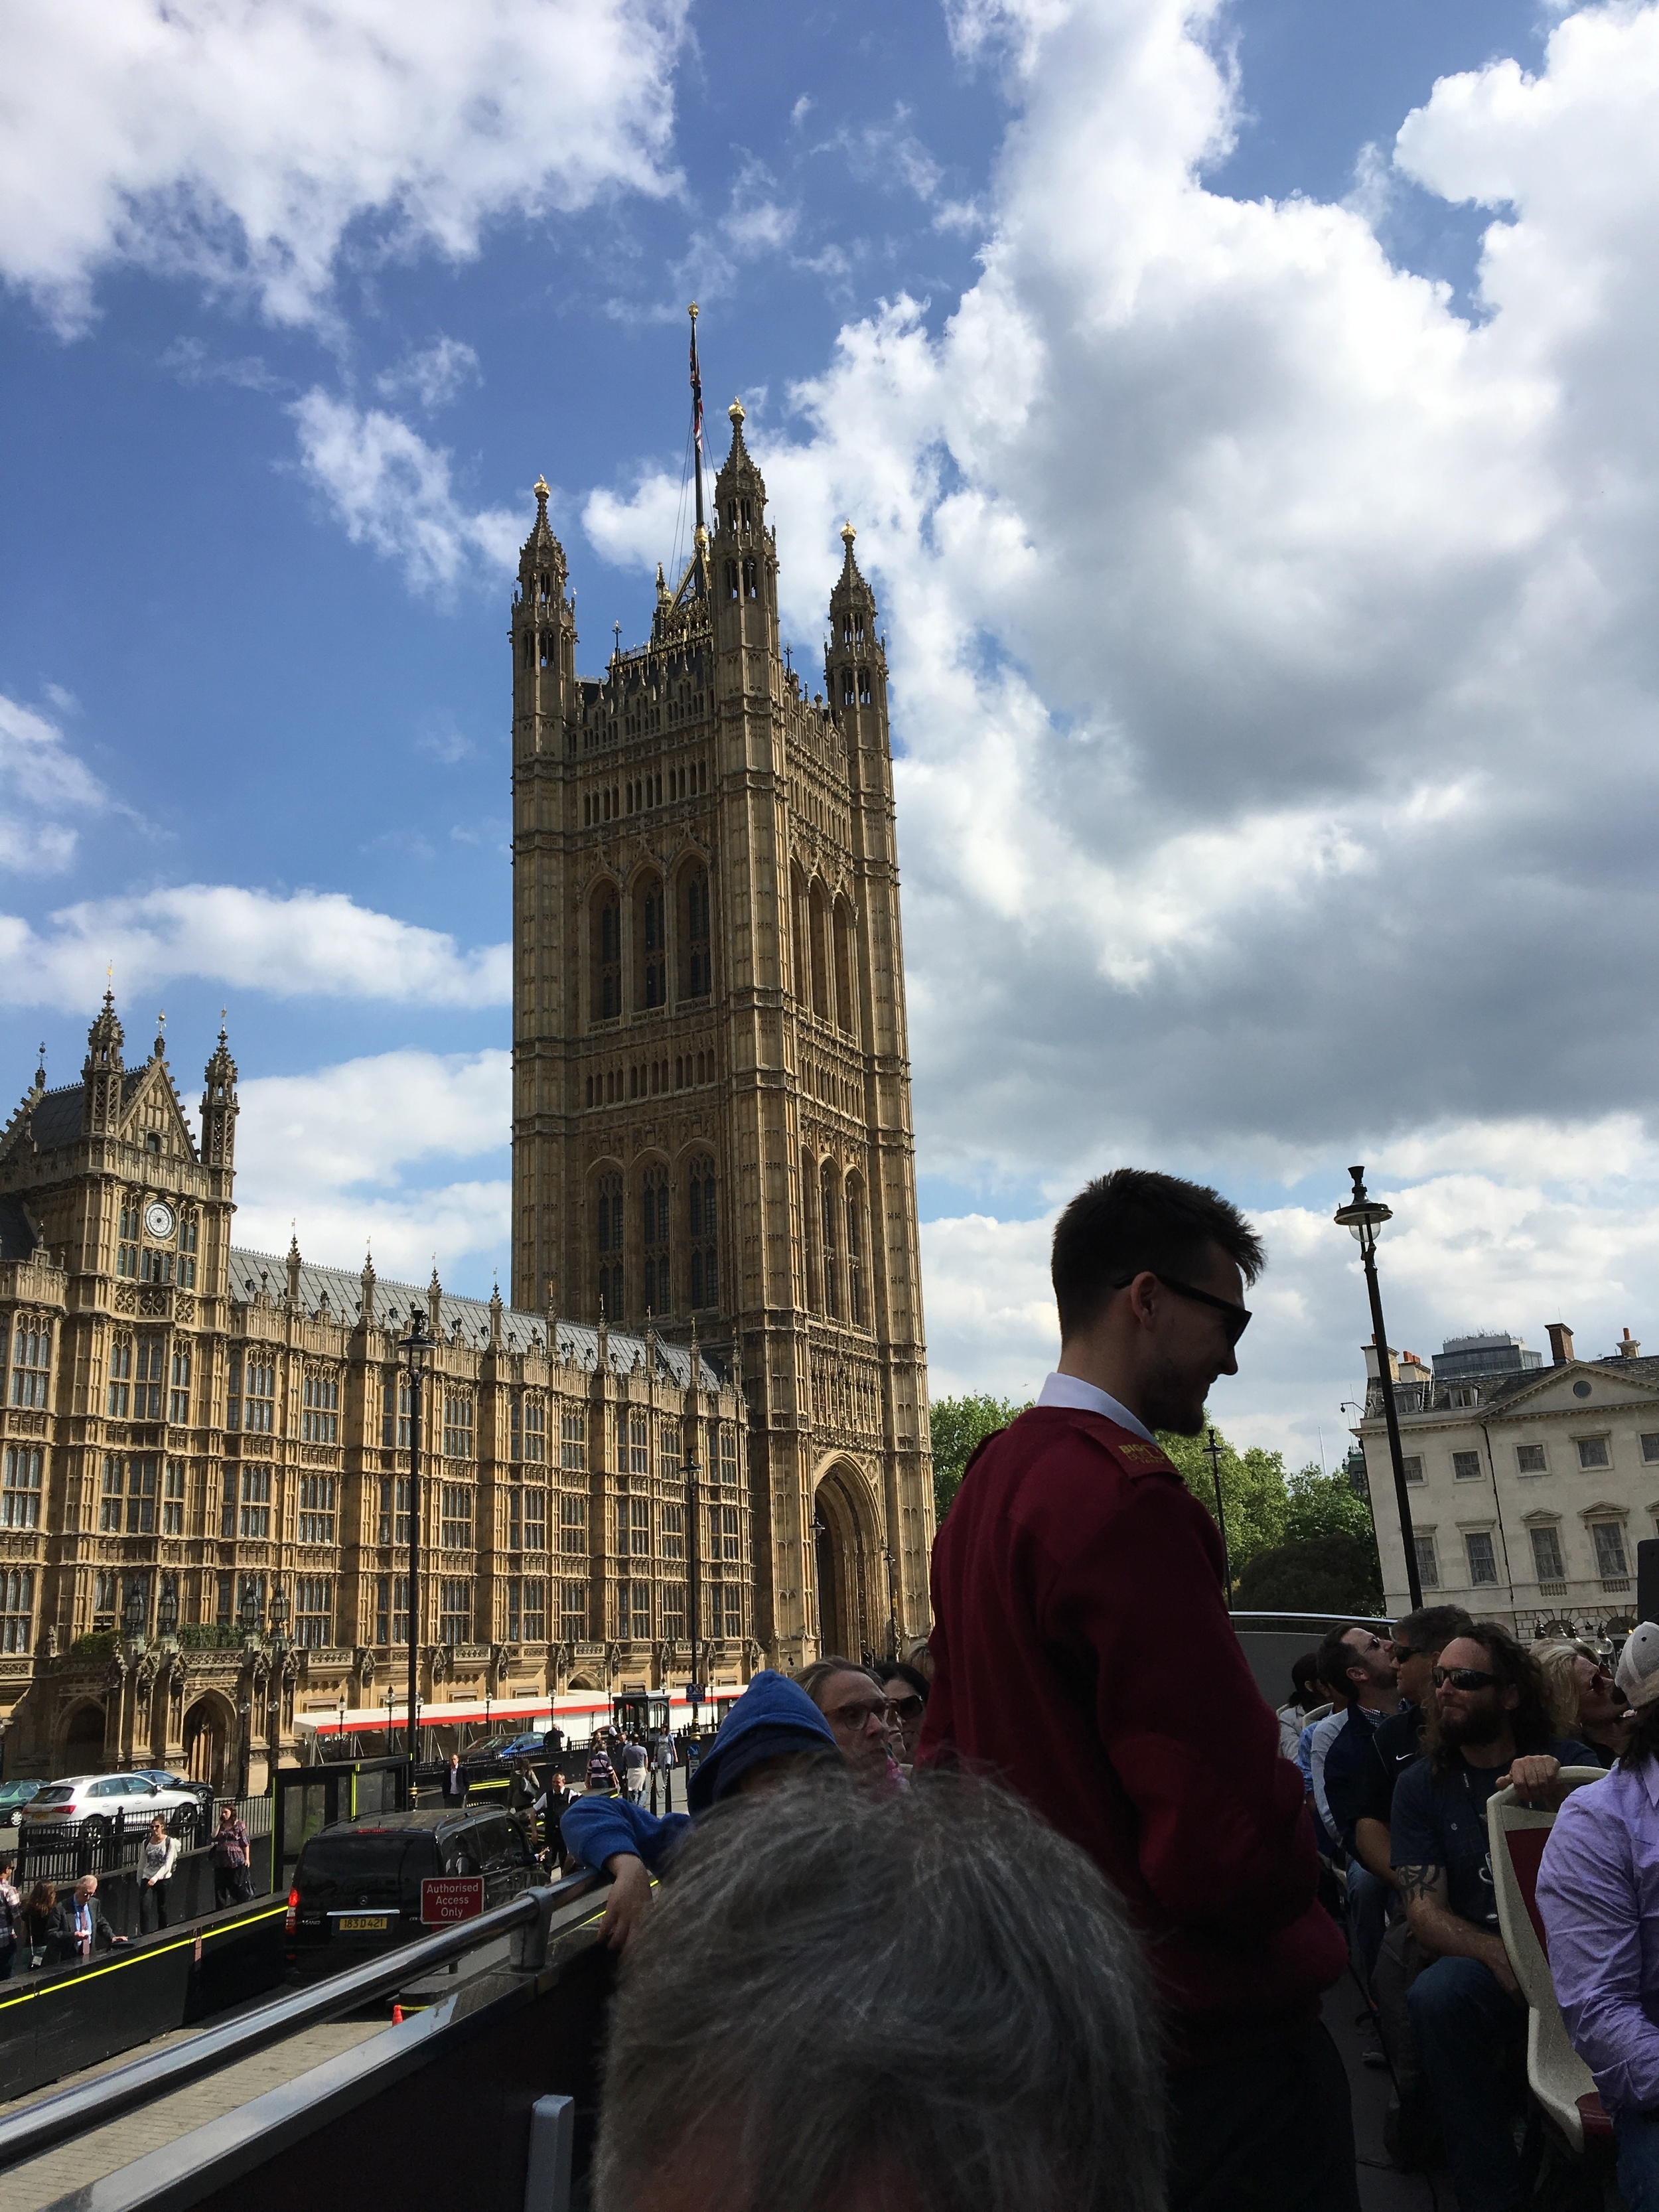 The live guides offer narration and answer questions, on board near the Houses of Parliament